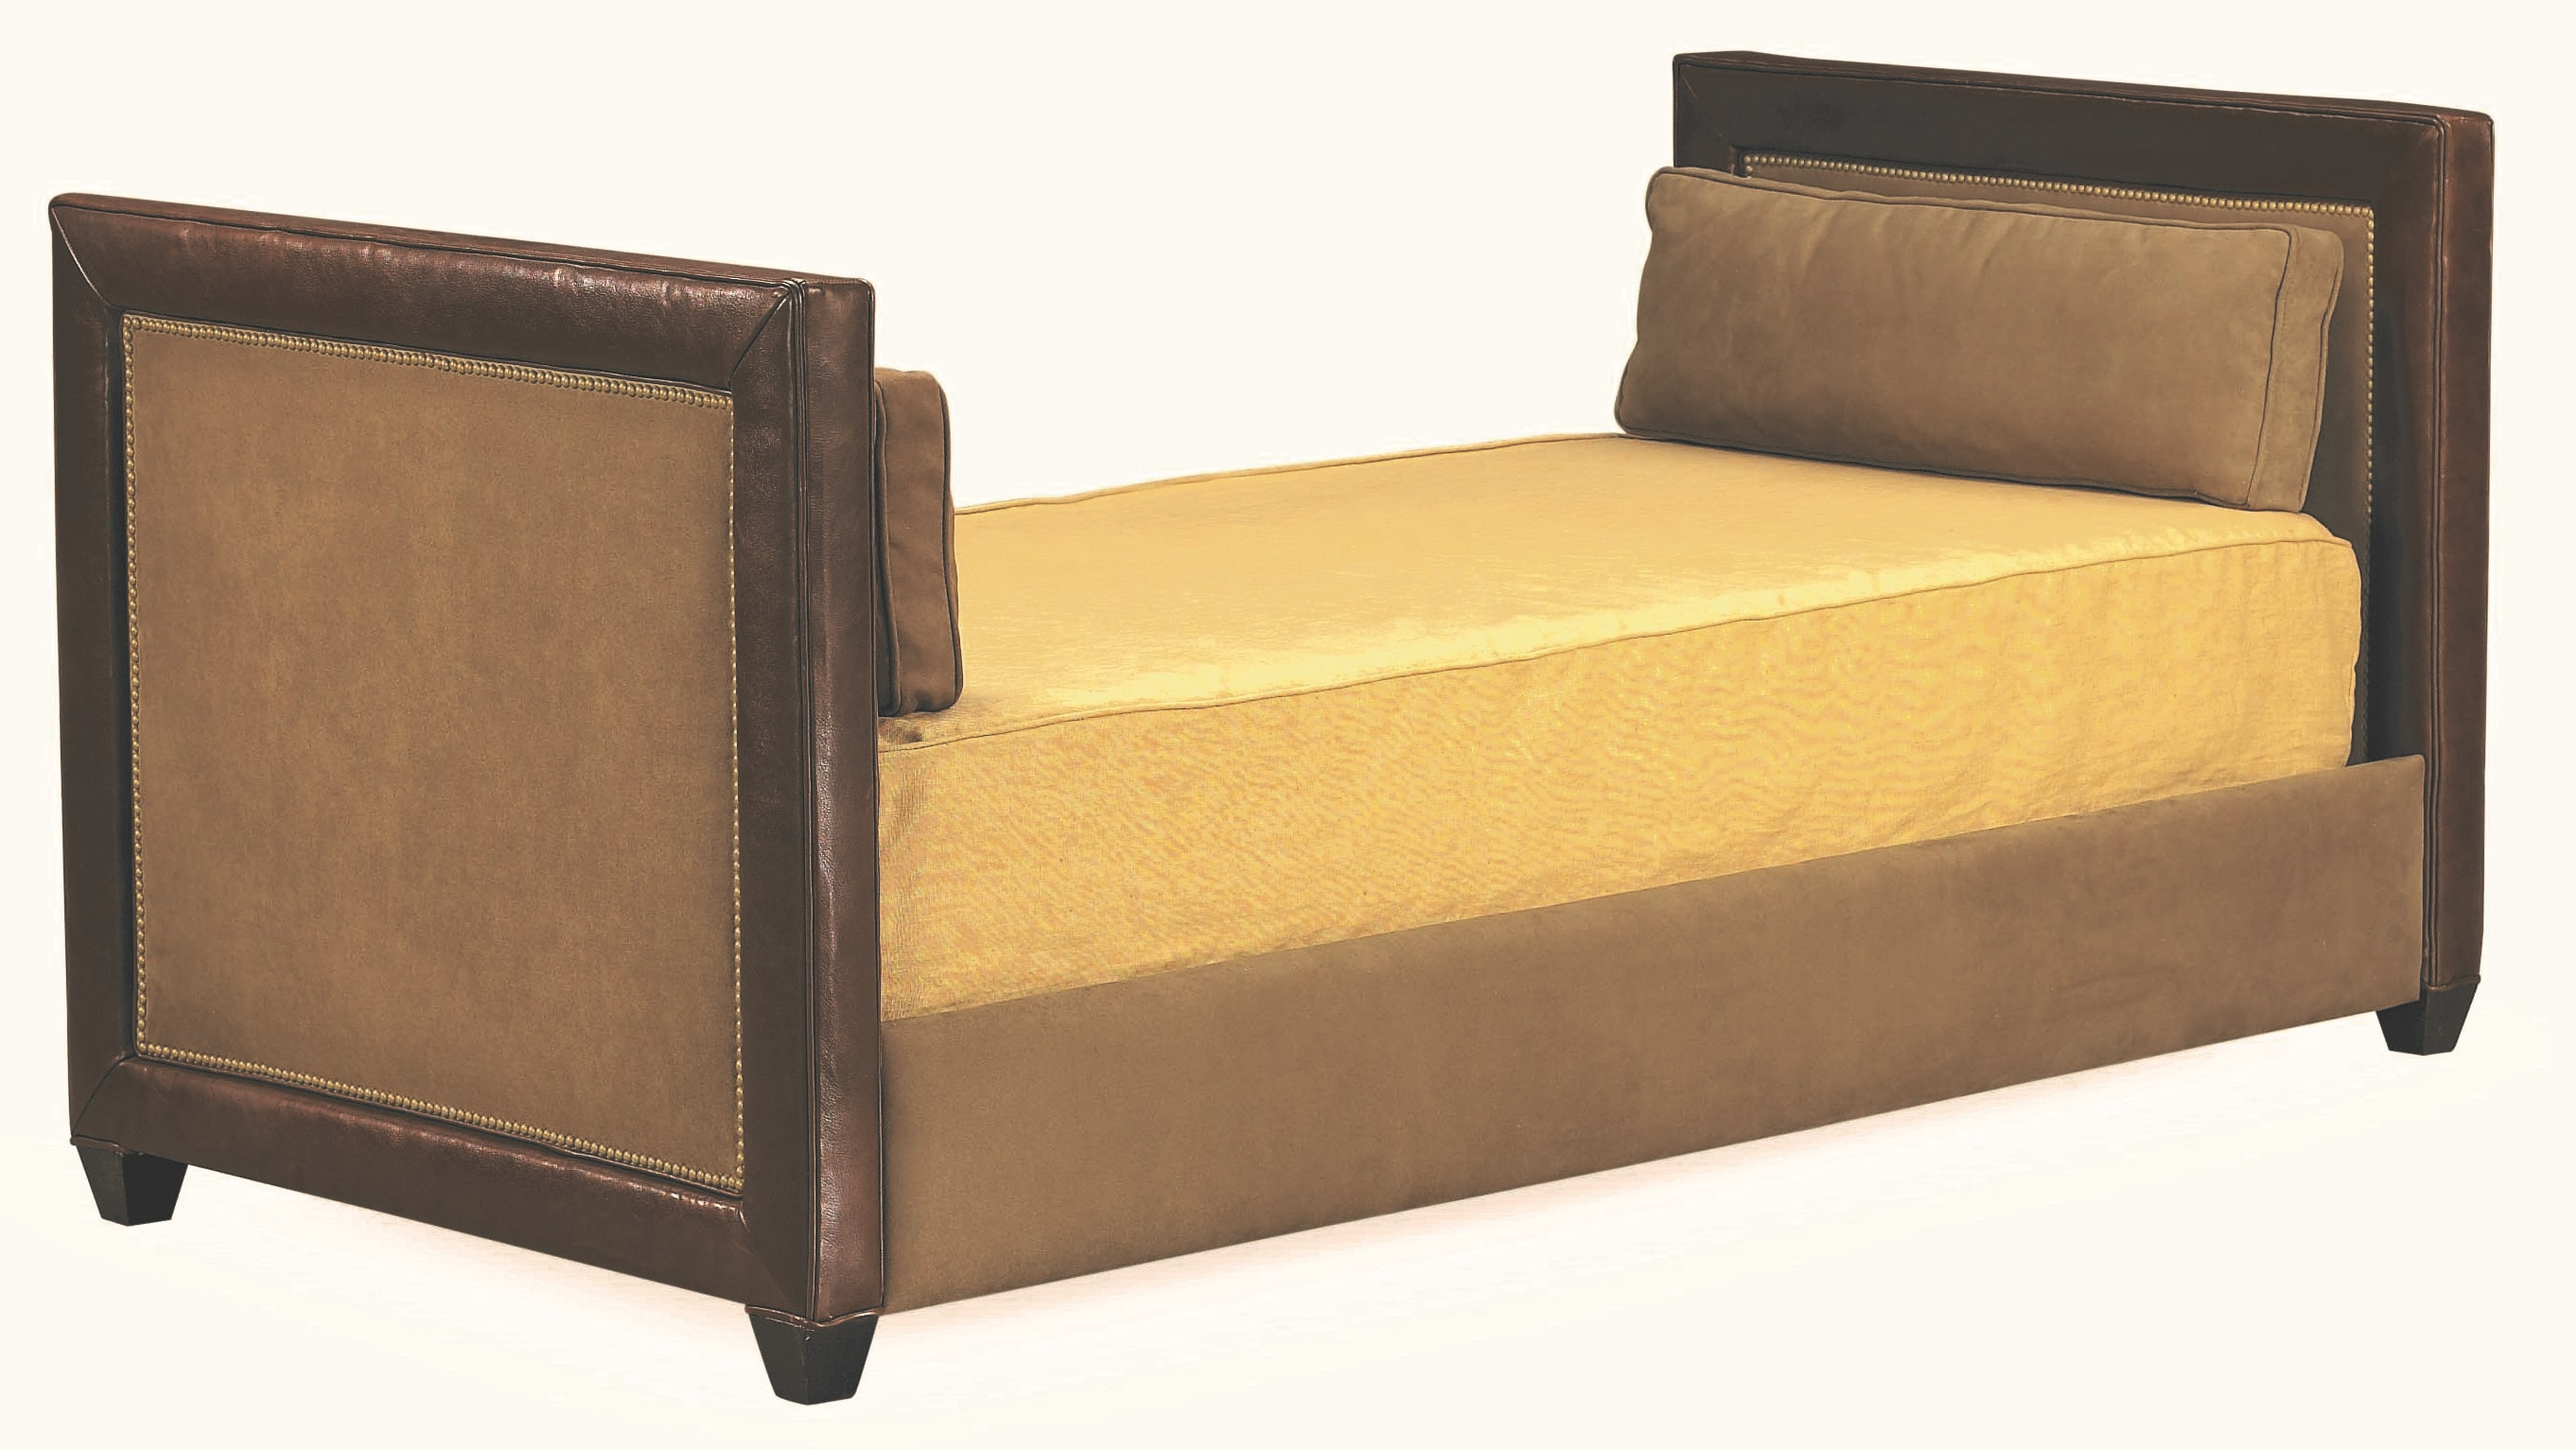 Delightful Lee Industries Bedroom Leather Twin Day Bed L34 30DB At Eastern Furniture